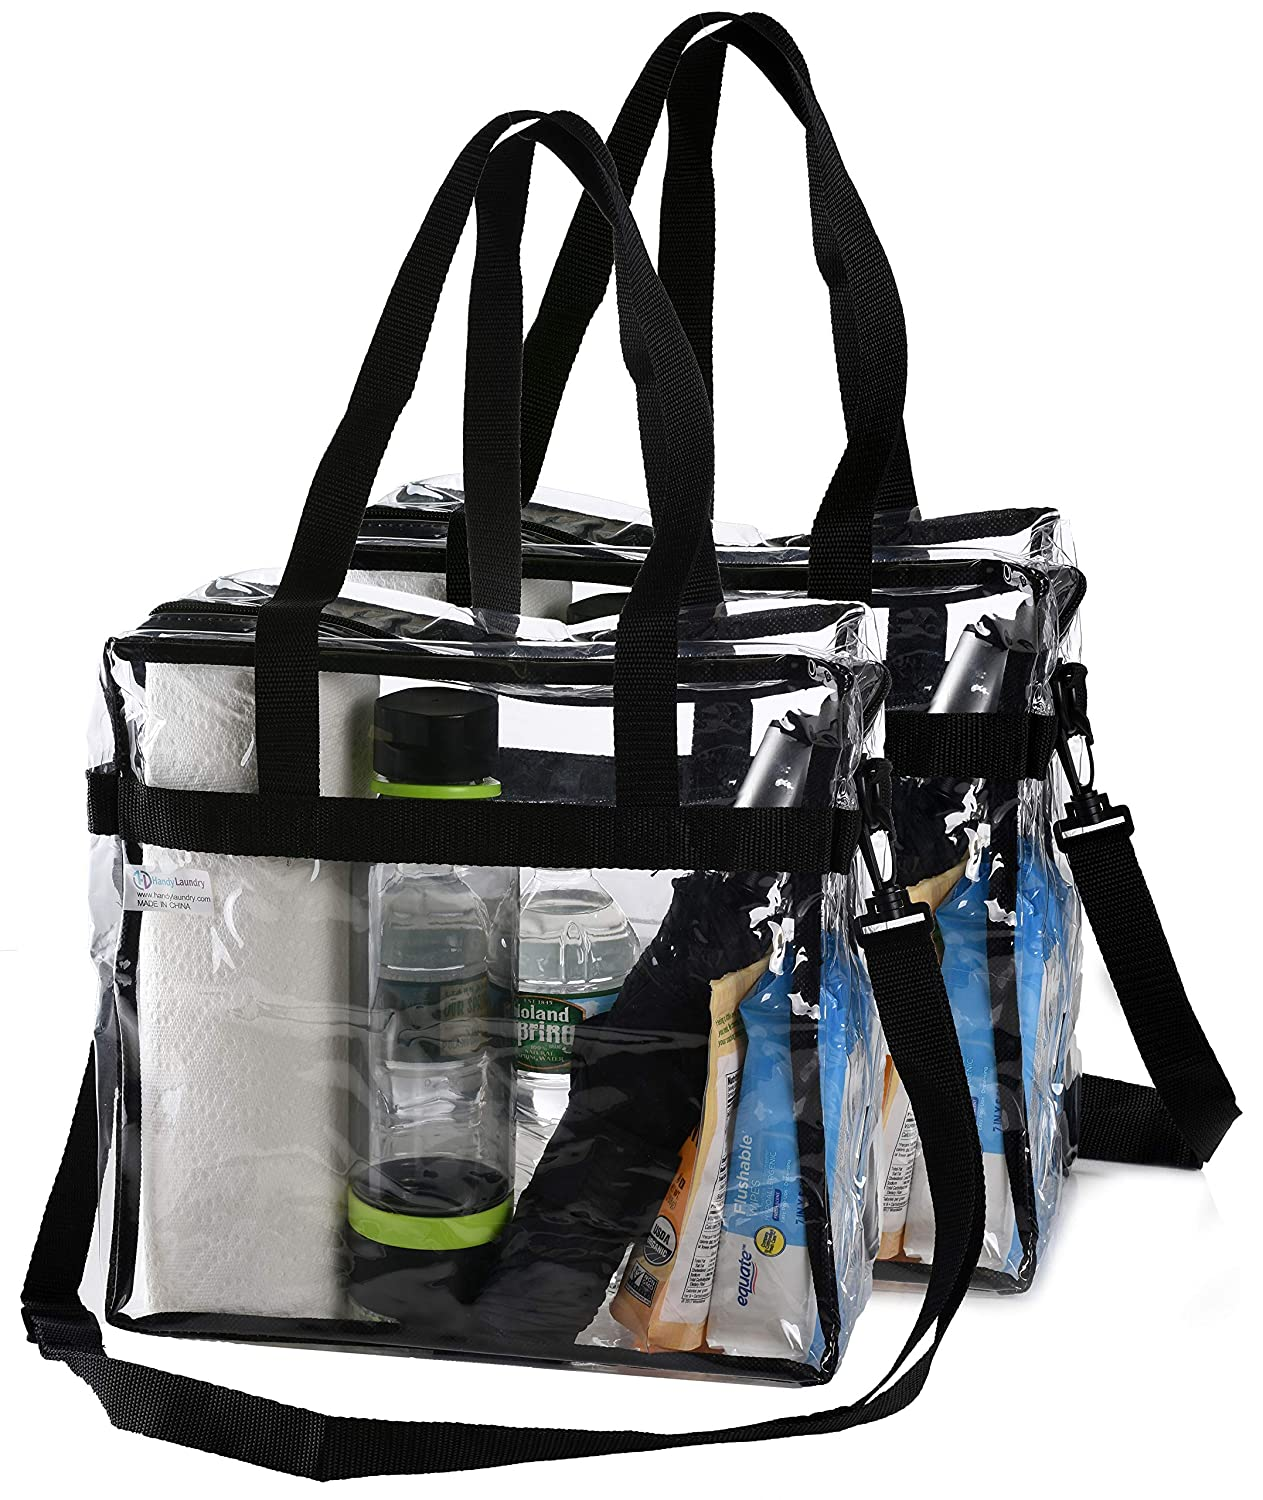 9e63c31d143c Clear Tote Bag NFL Stadium Approved - Shoulder Straps and Zippered Top.  Perfect Clear Bag for Work, School, Sports Games and Concerts. Meets NFL  and ...